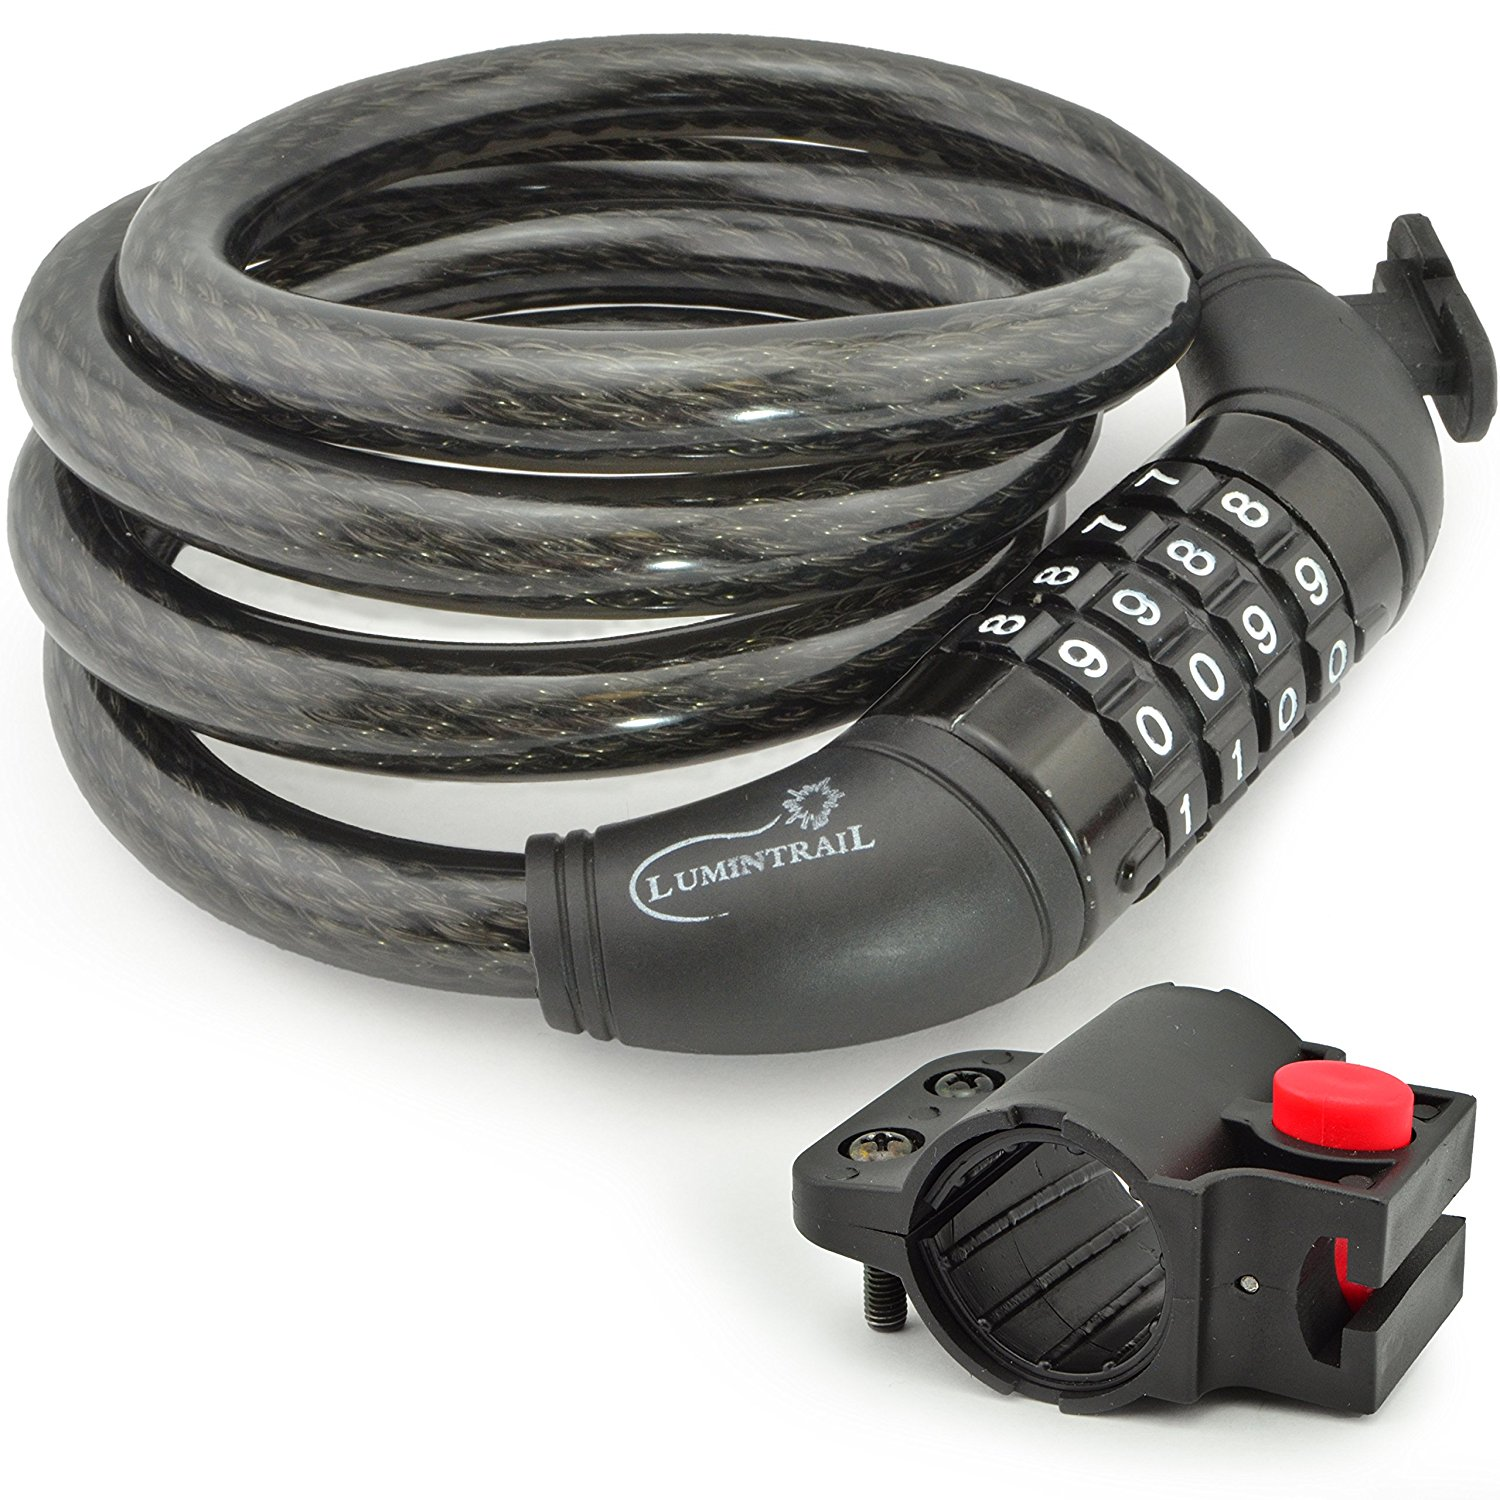 Lumintrail Bike Cable Lock, Self Coiling 12mm Braided Steel Cable Resettable Combination Cable Lock with Included Mounting Bracket (1 or 2 pack)